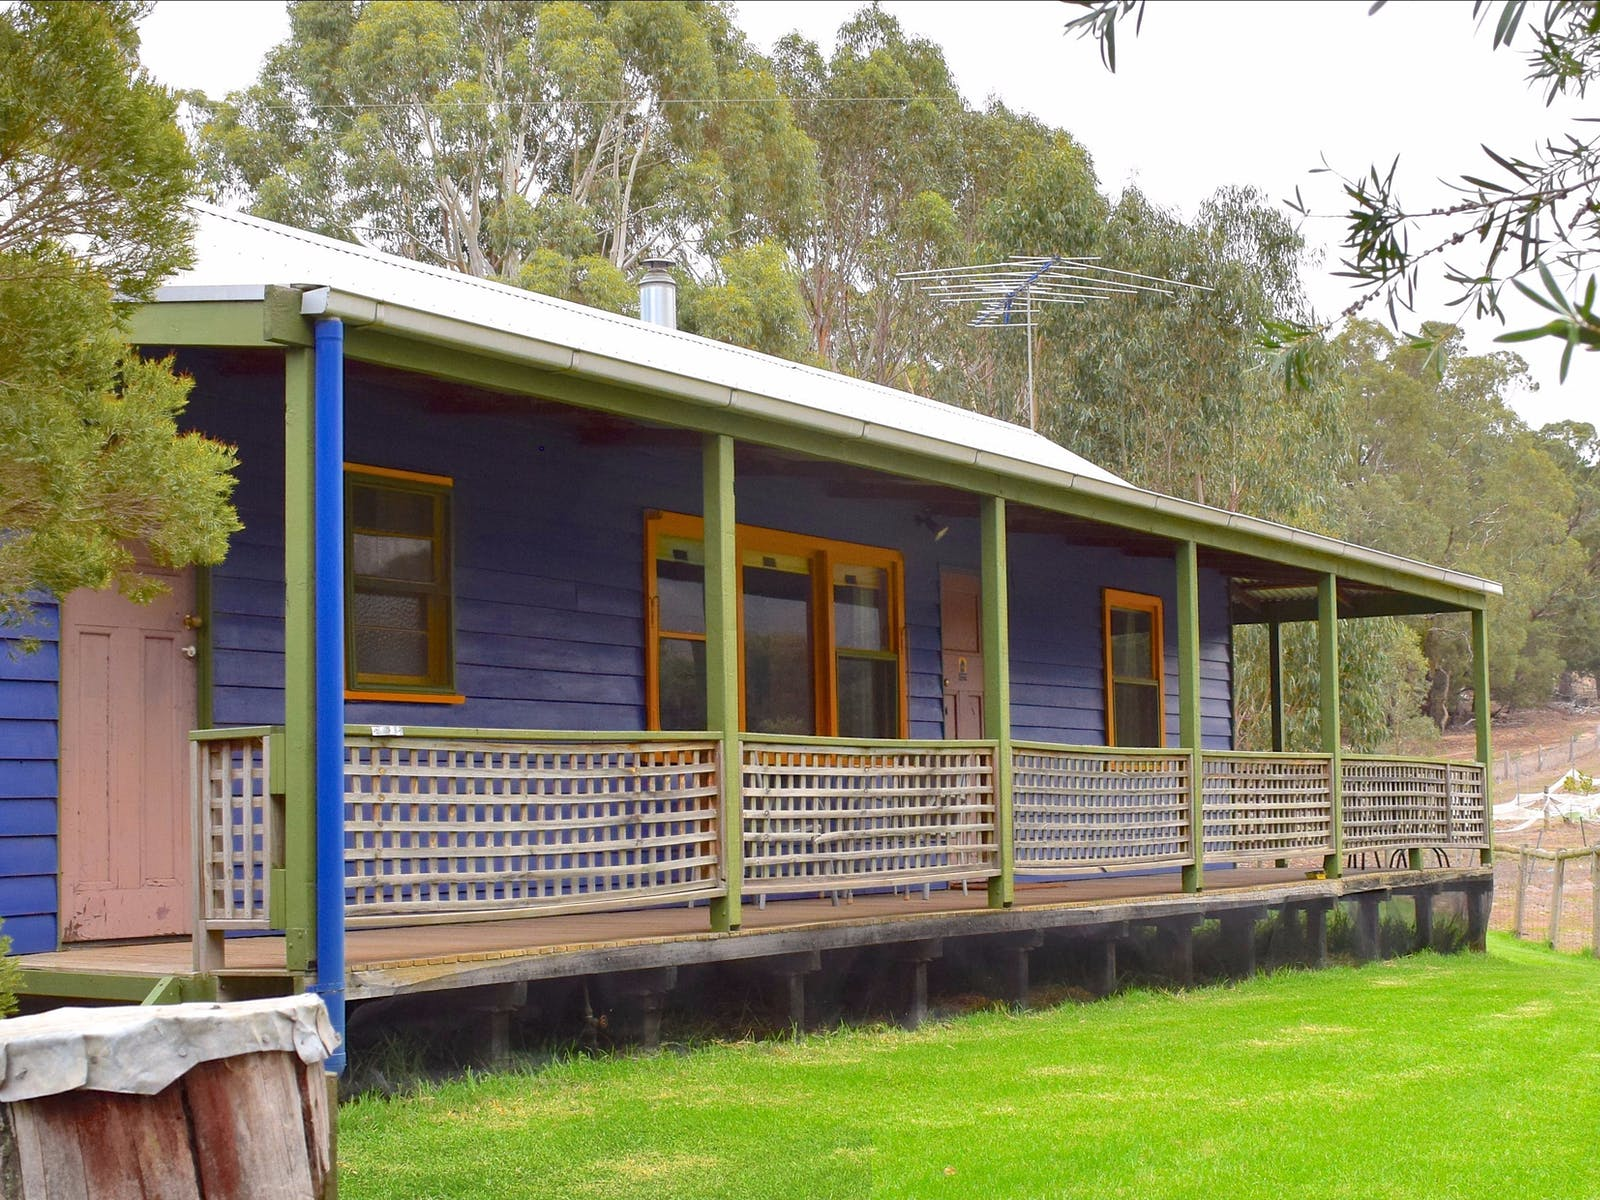 The deck of the Blue House